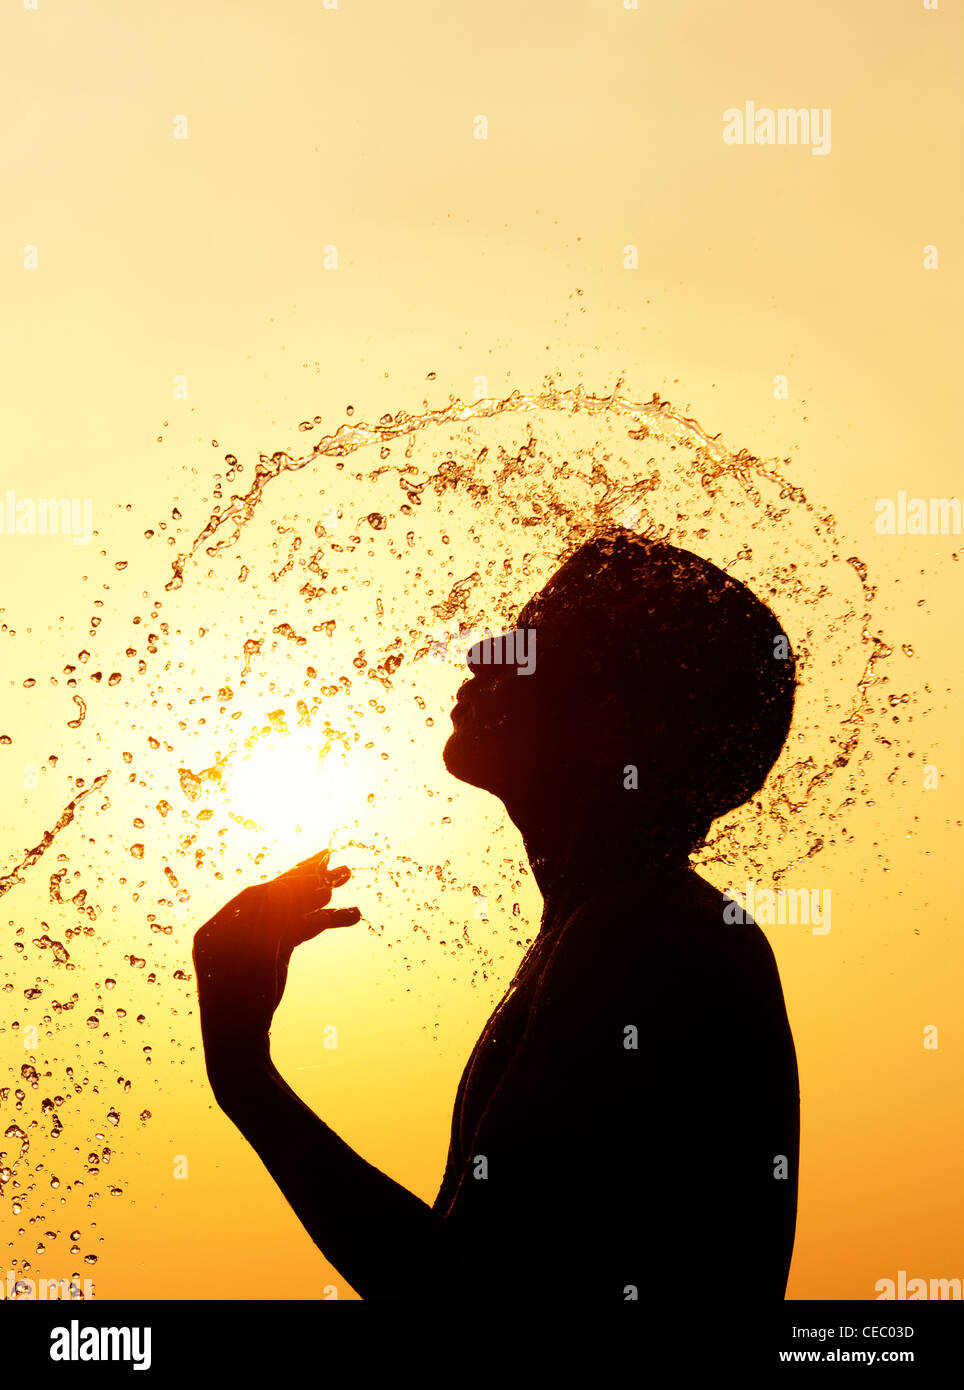 Indian man splashing water over himself at sunset. Silhouette. India - Stock Image